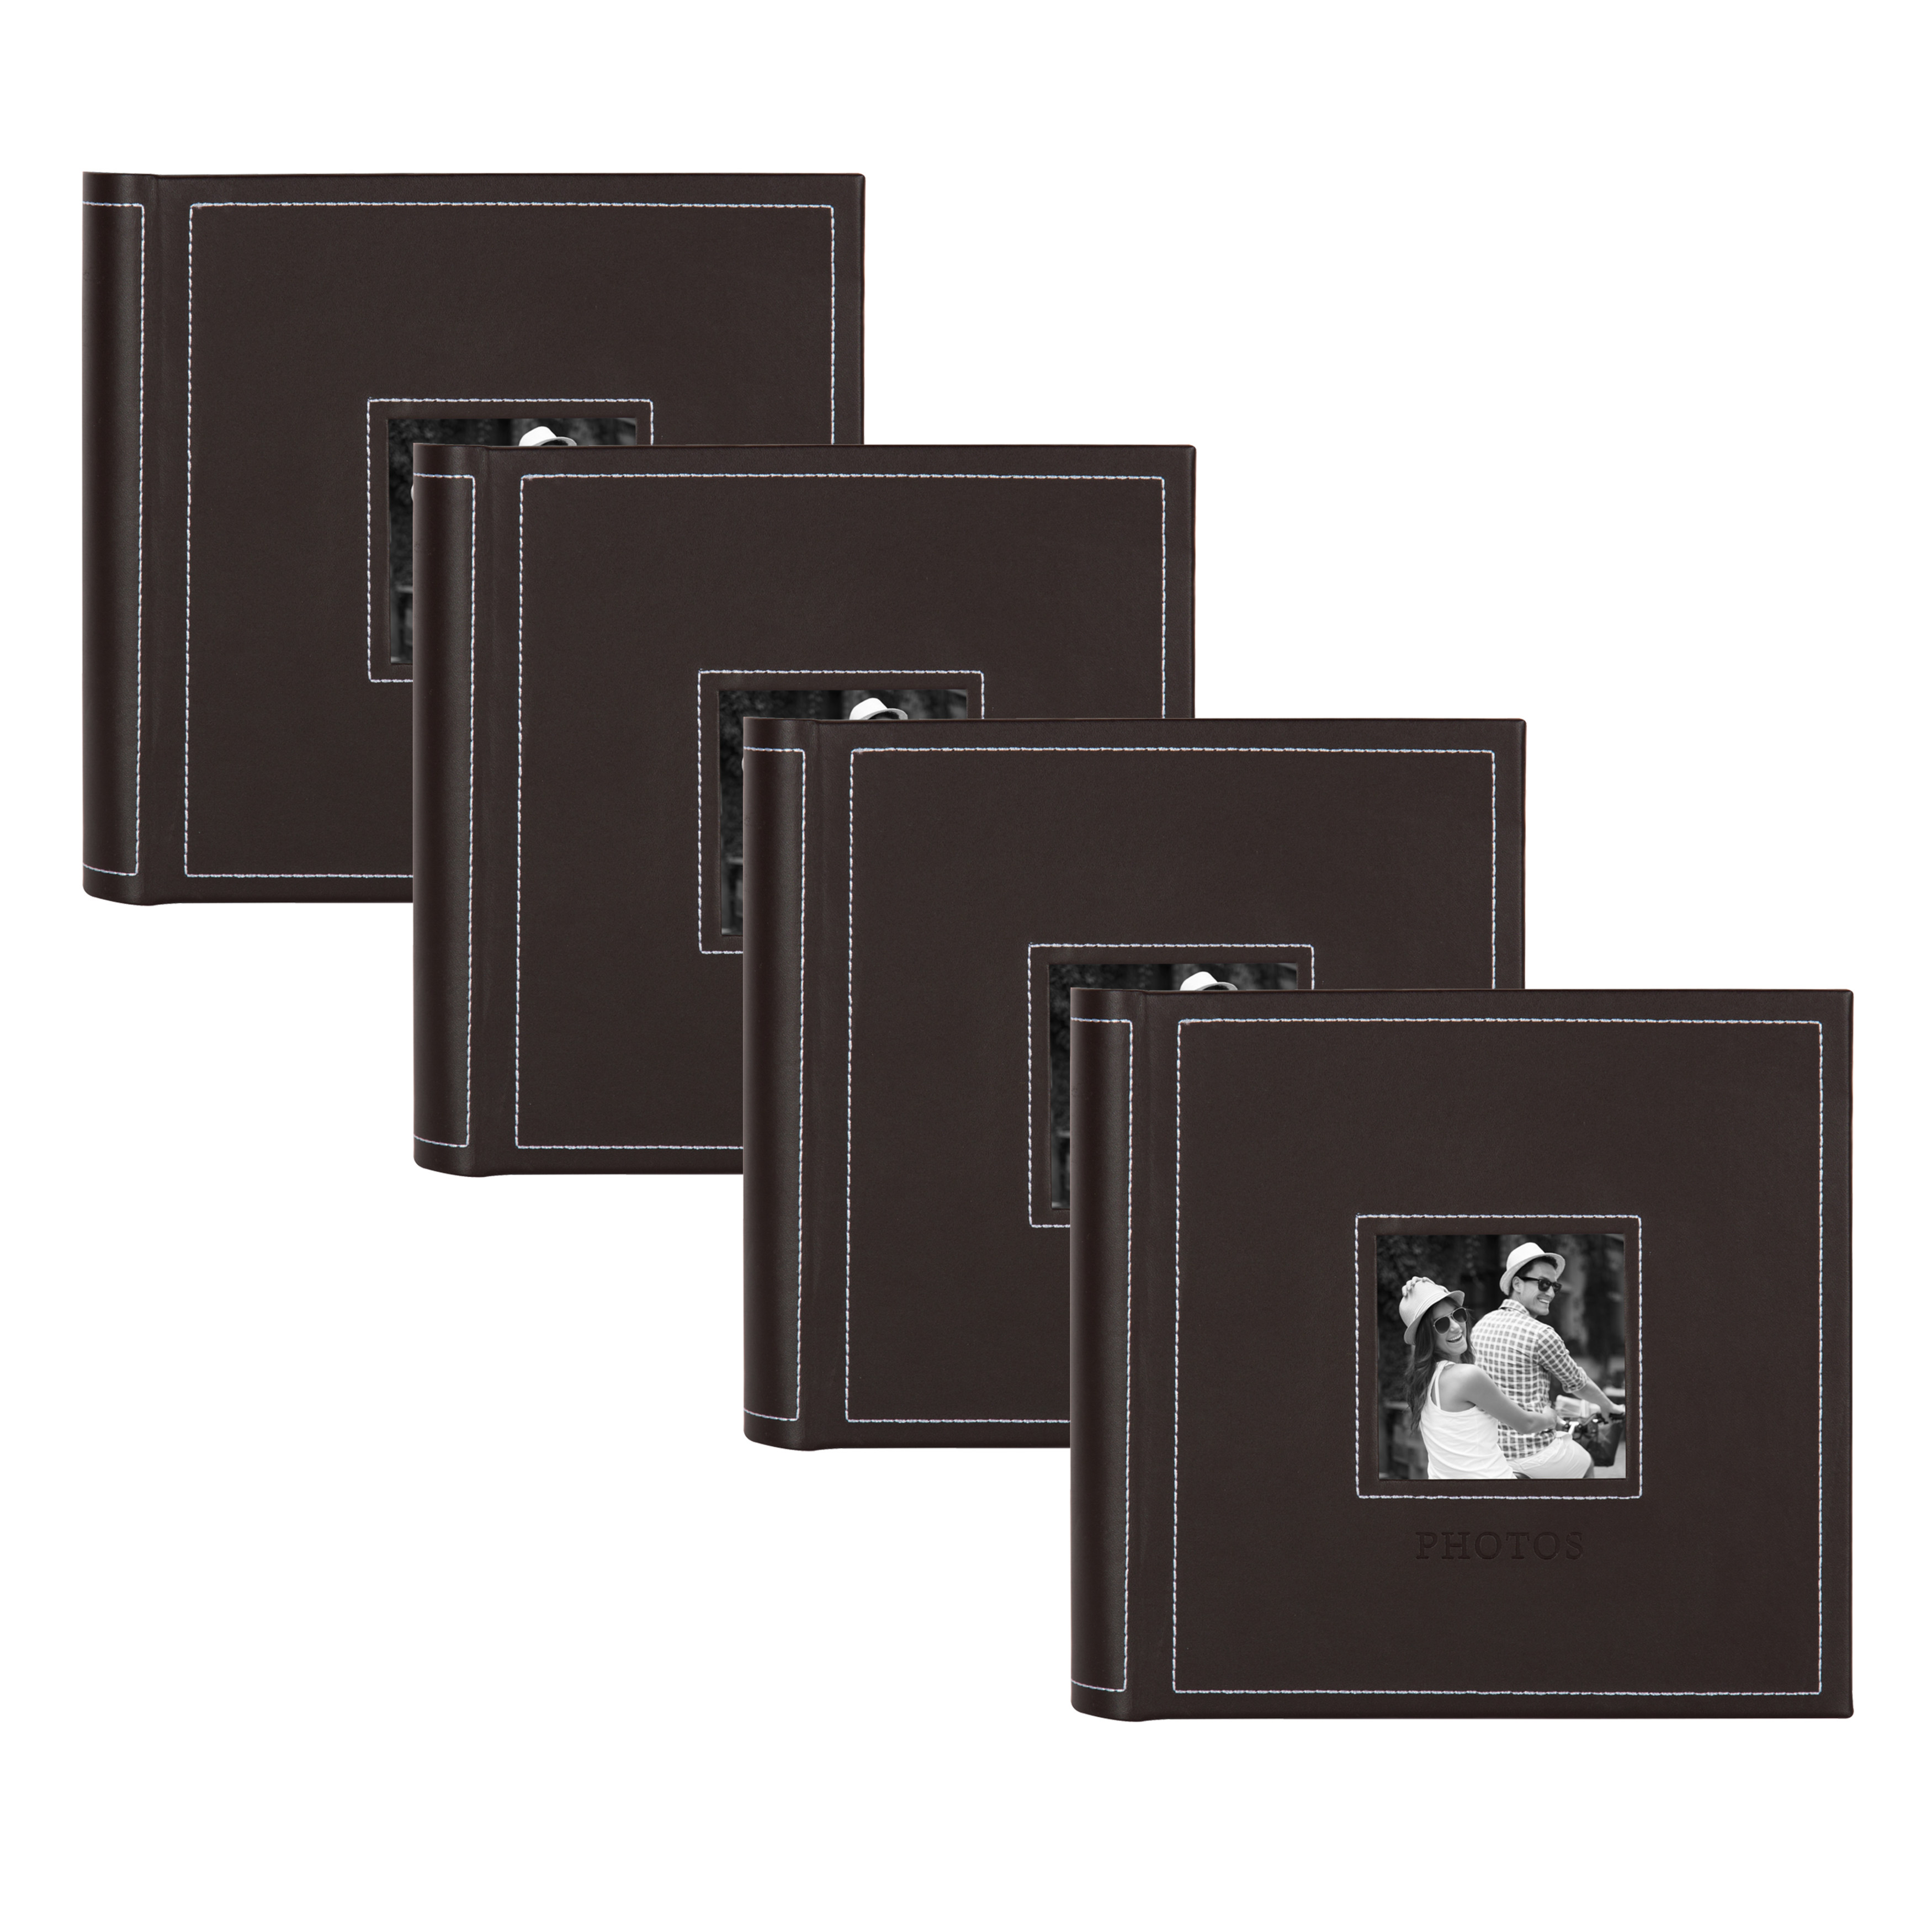 DesignOvation Debossed Faux Leather Square Photo Album - Set of 4